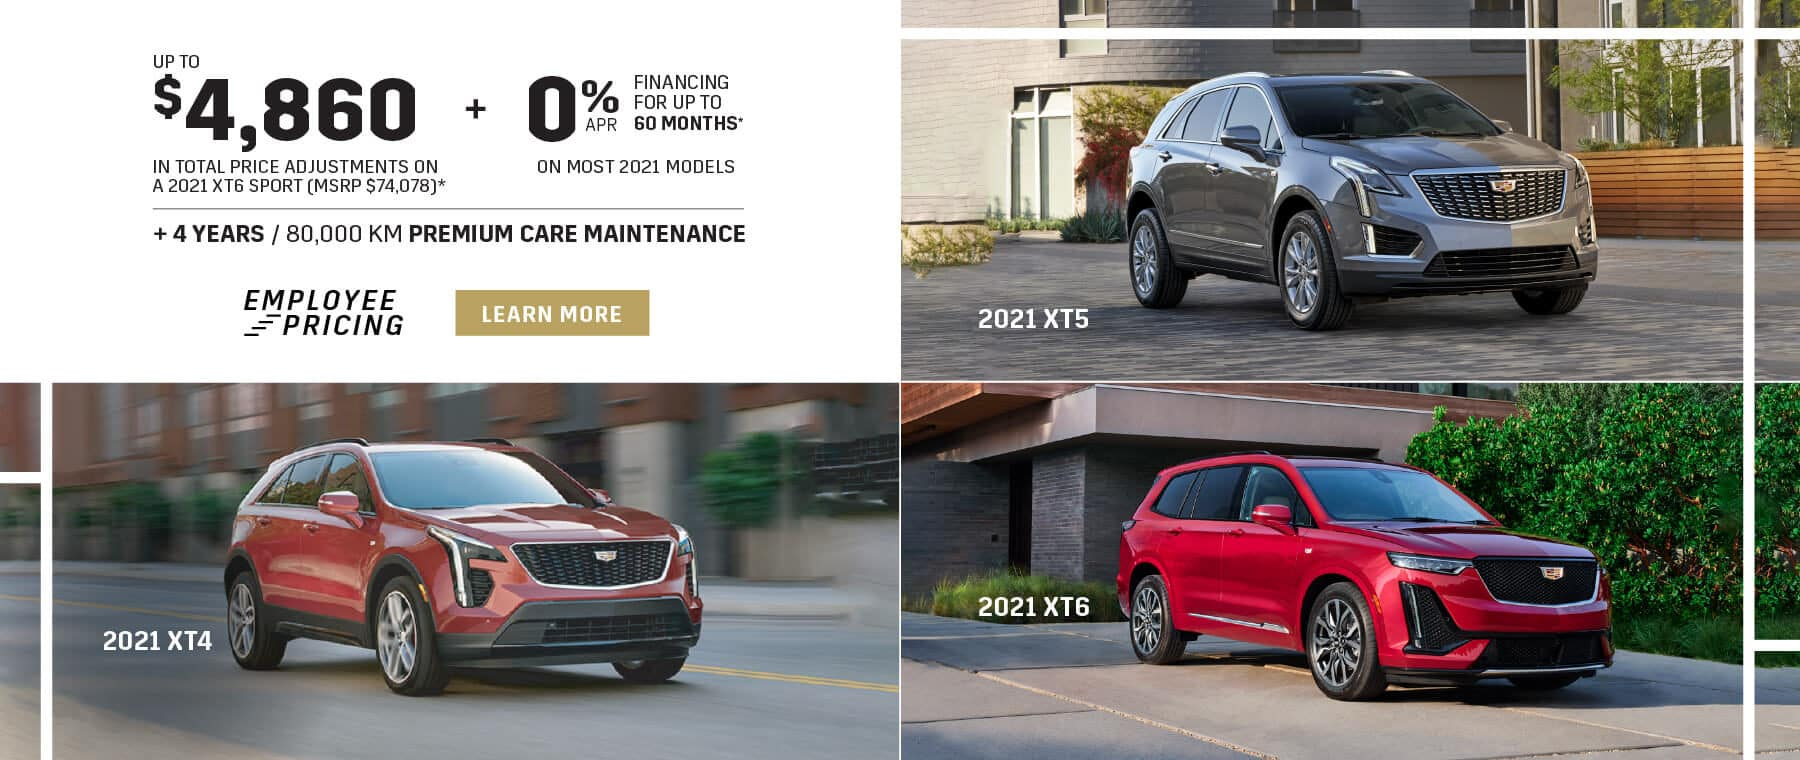 Cadillac Employee Pricing in Mississauga - Applewood Cadillac